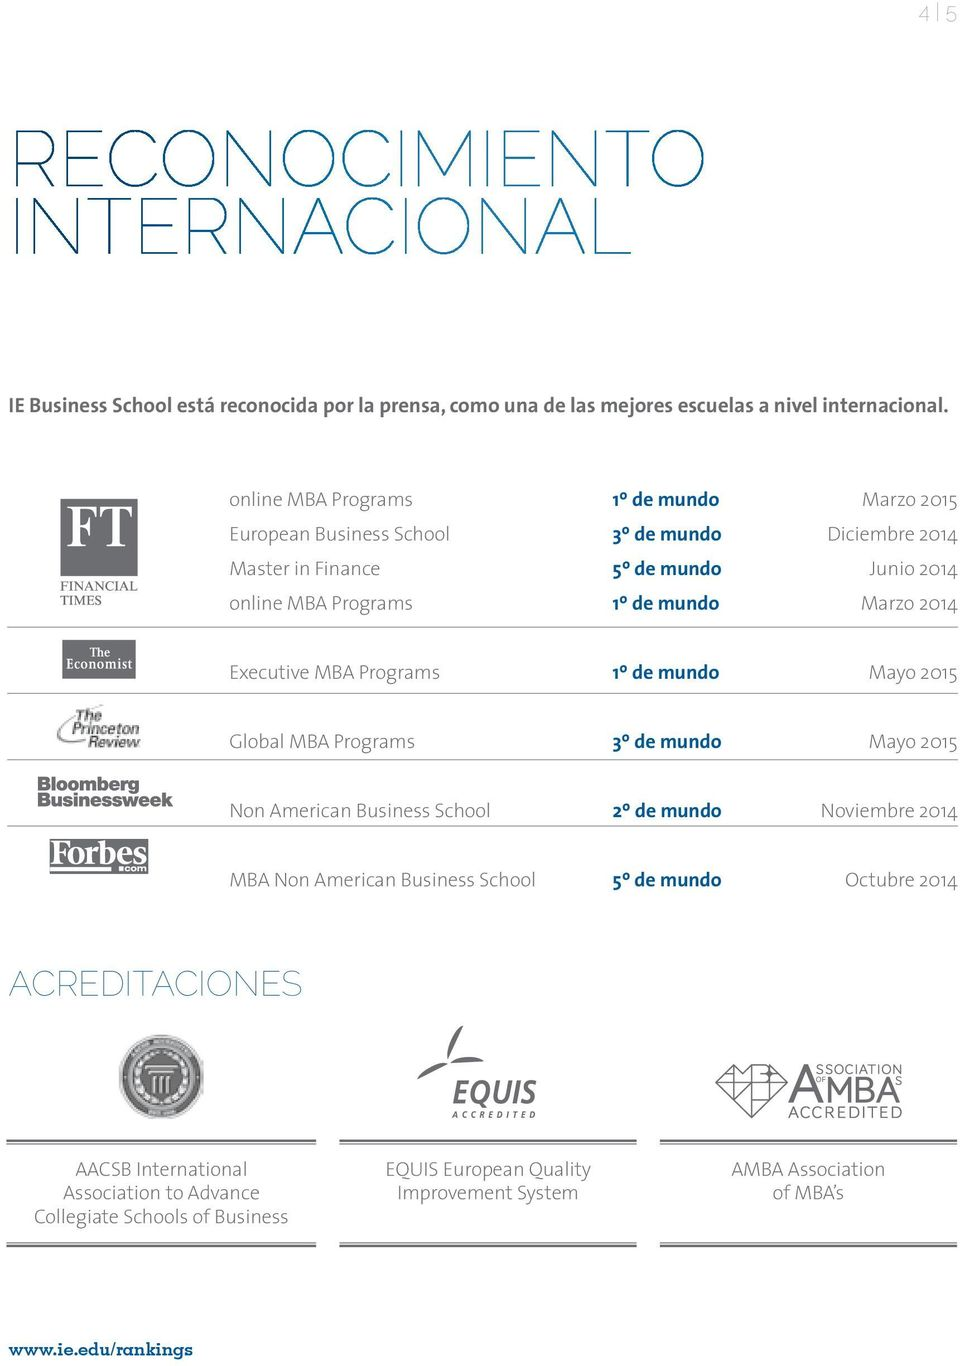 2014 Executive MBA Programs 1º de mundo Mayo 2015 Global MBA Programs 3º de mundo Mayo 2015 Non American Business School 2º de mundo Noviembre 2014 MBA Non American Business